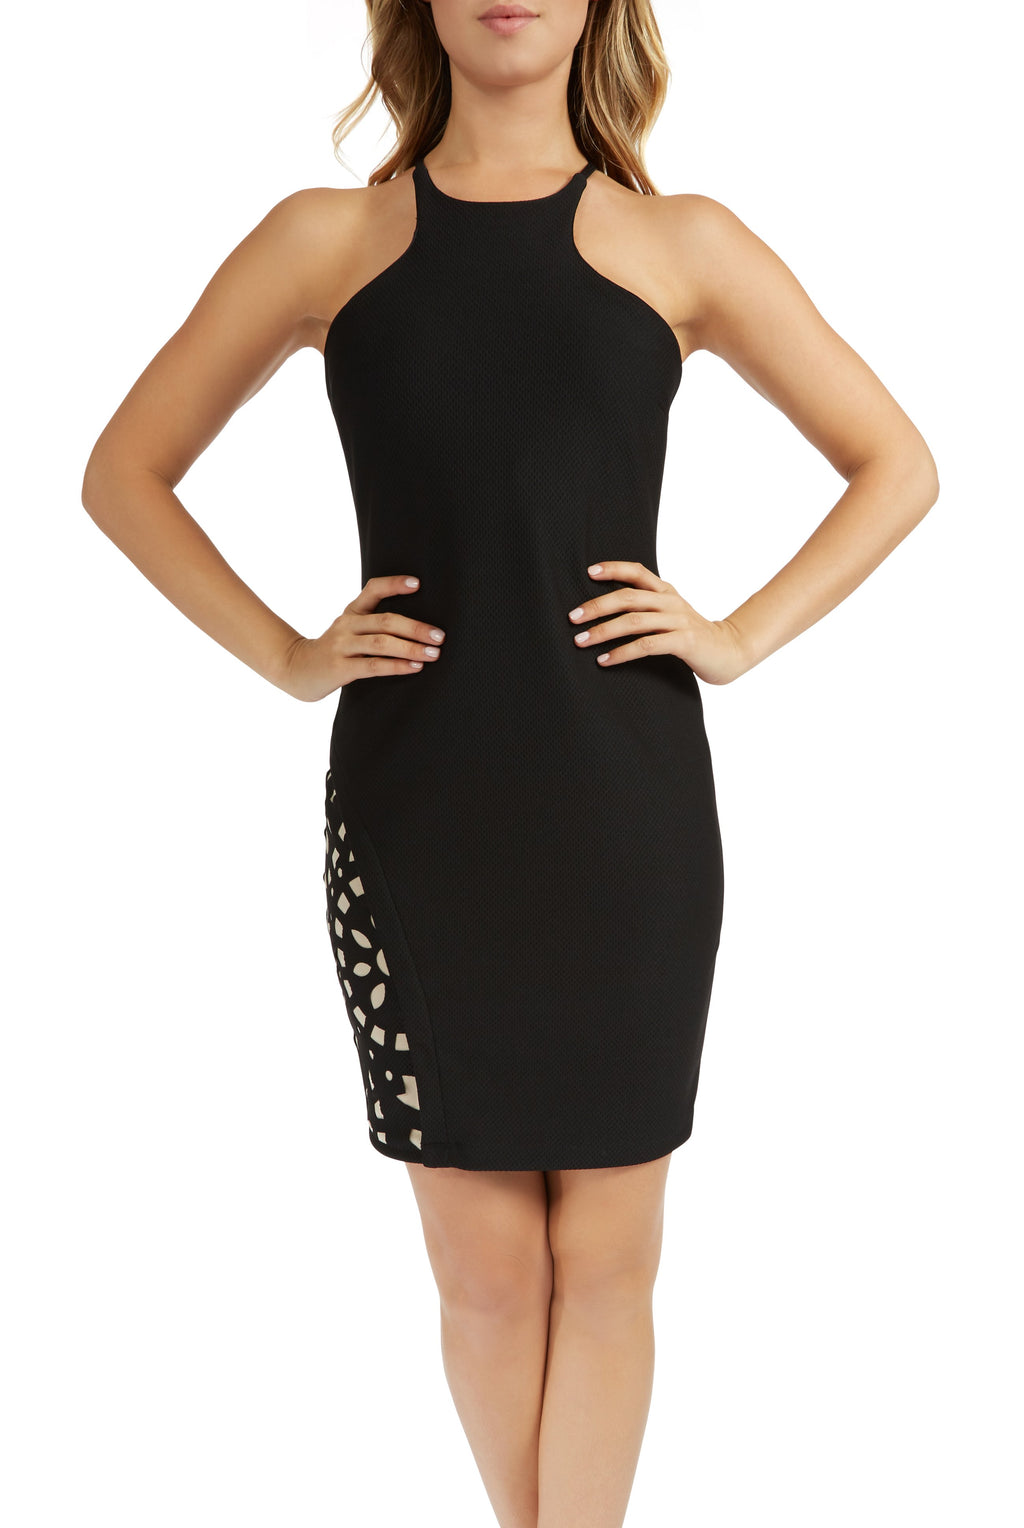 Teeze Me | Sleeveless Halter Top High Neck Honeycomb Cutout Fitted Dress | Black